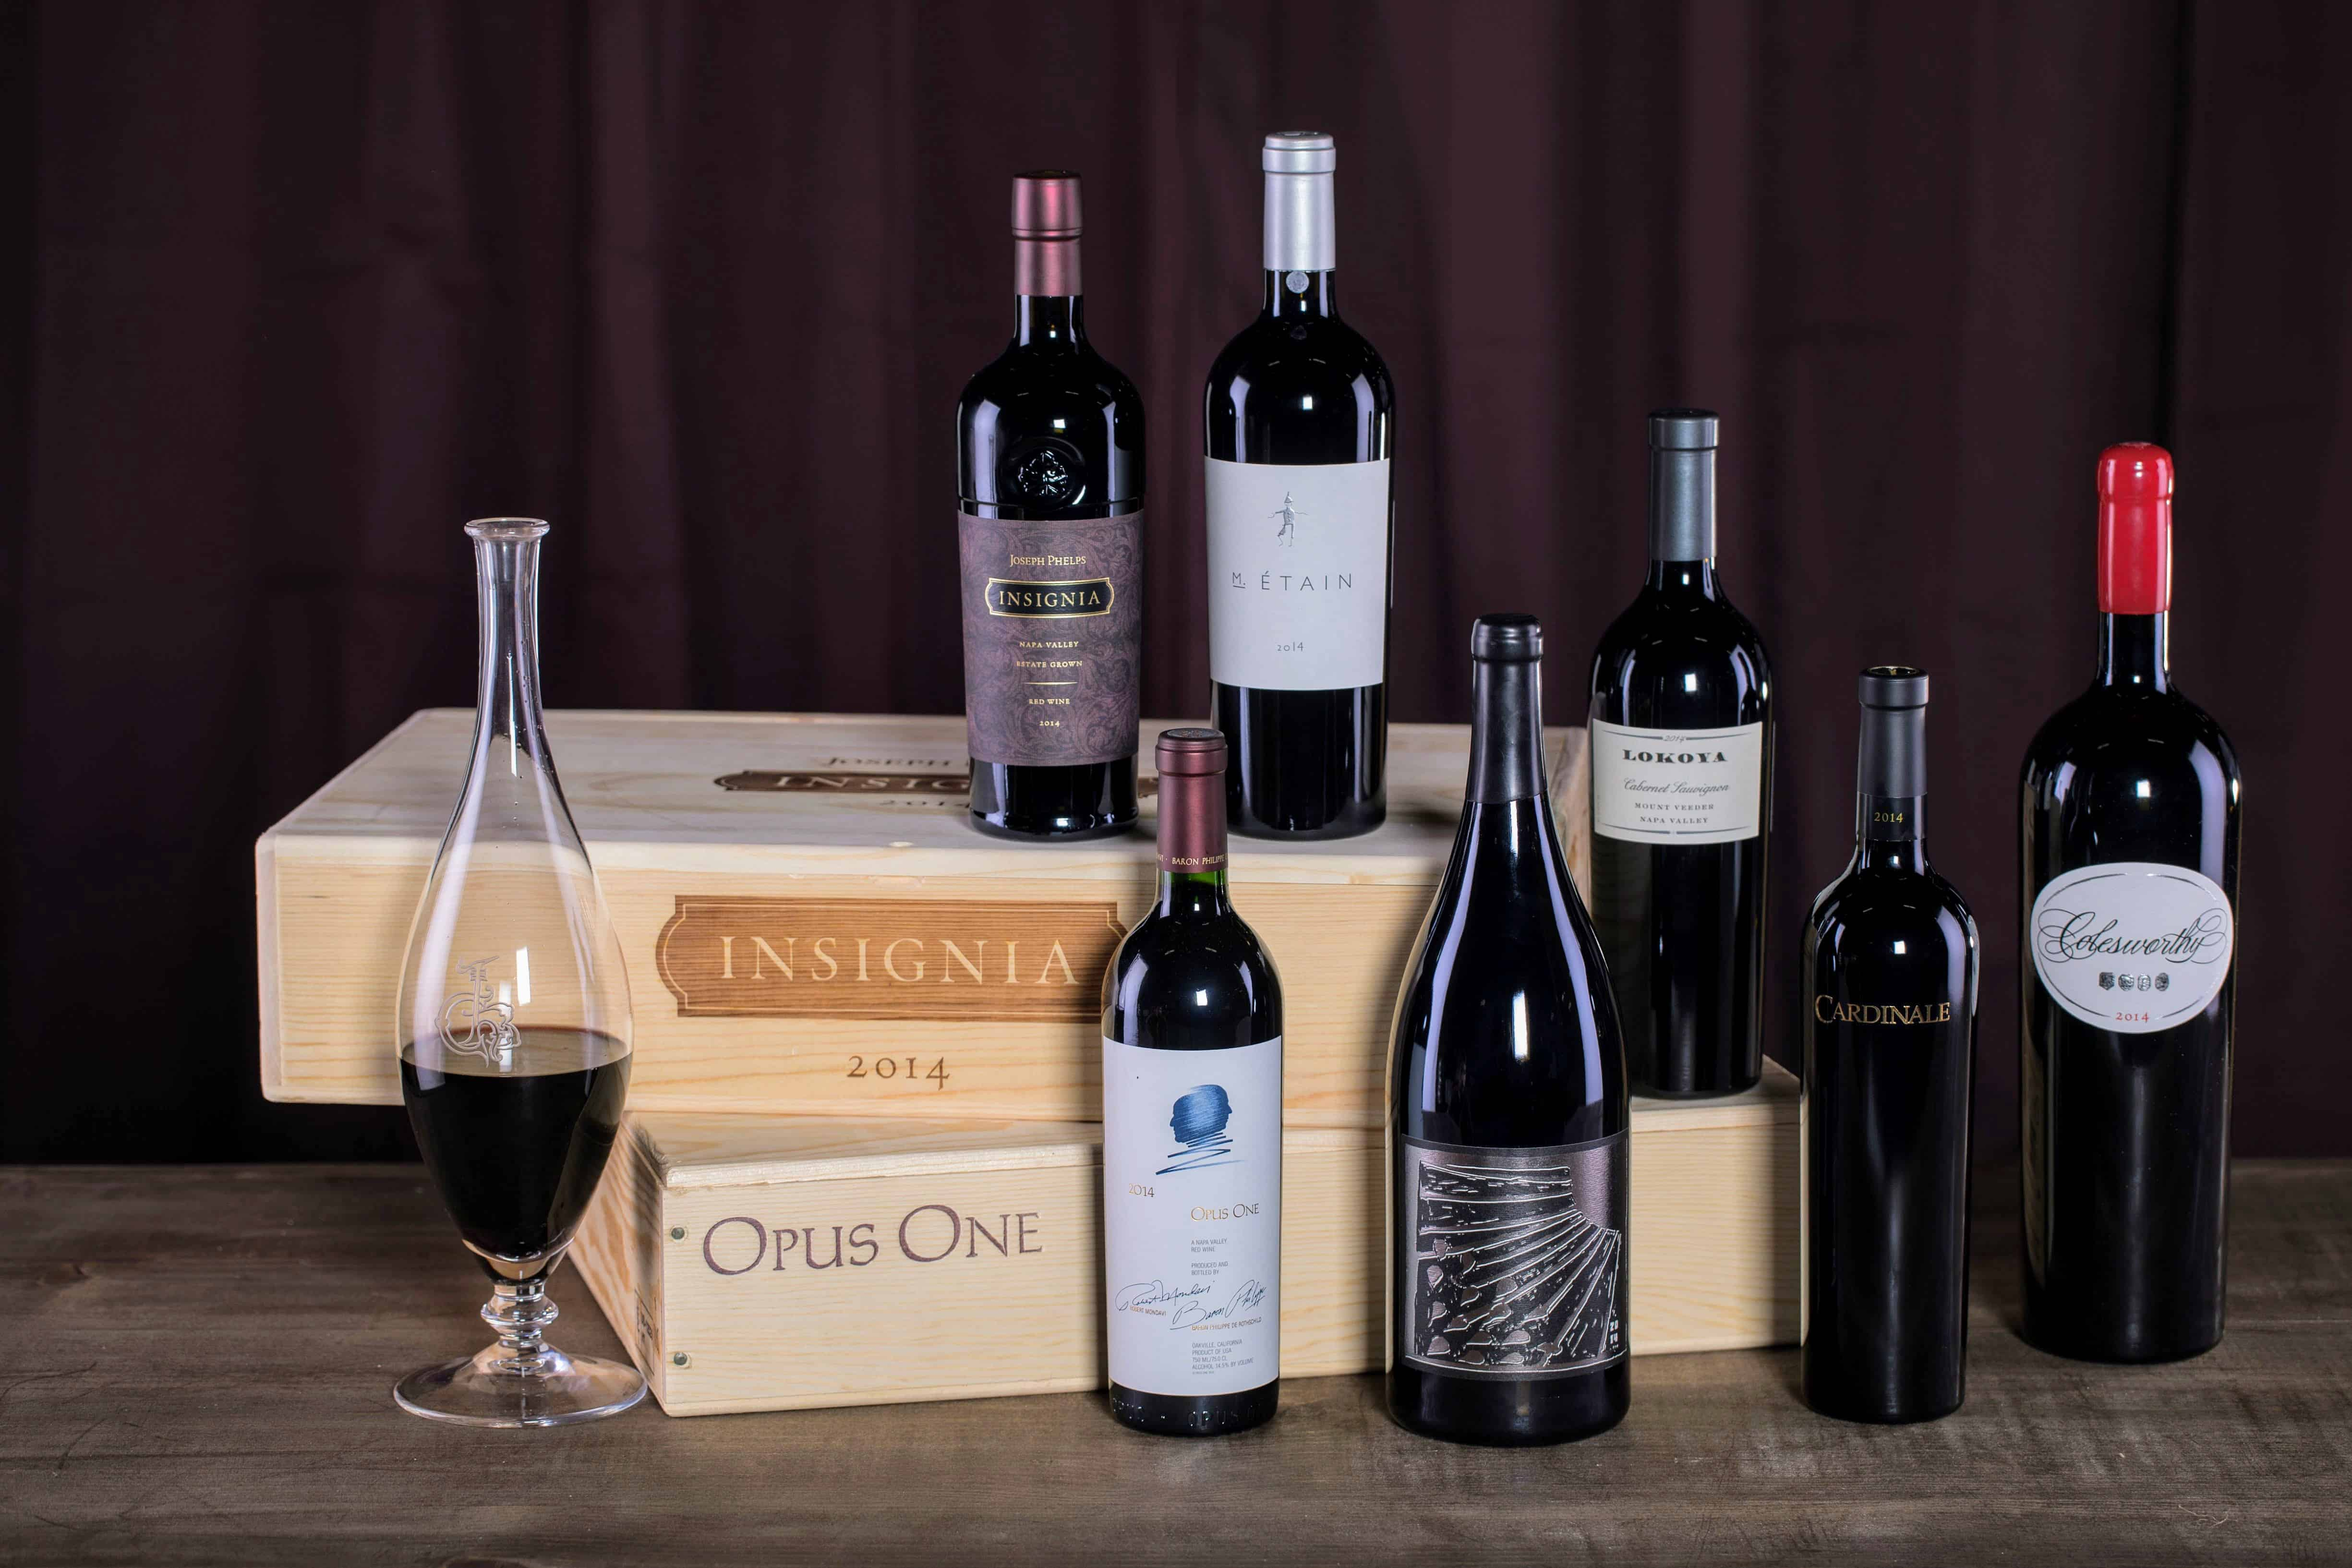 Wines from the best California wine regions